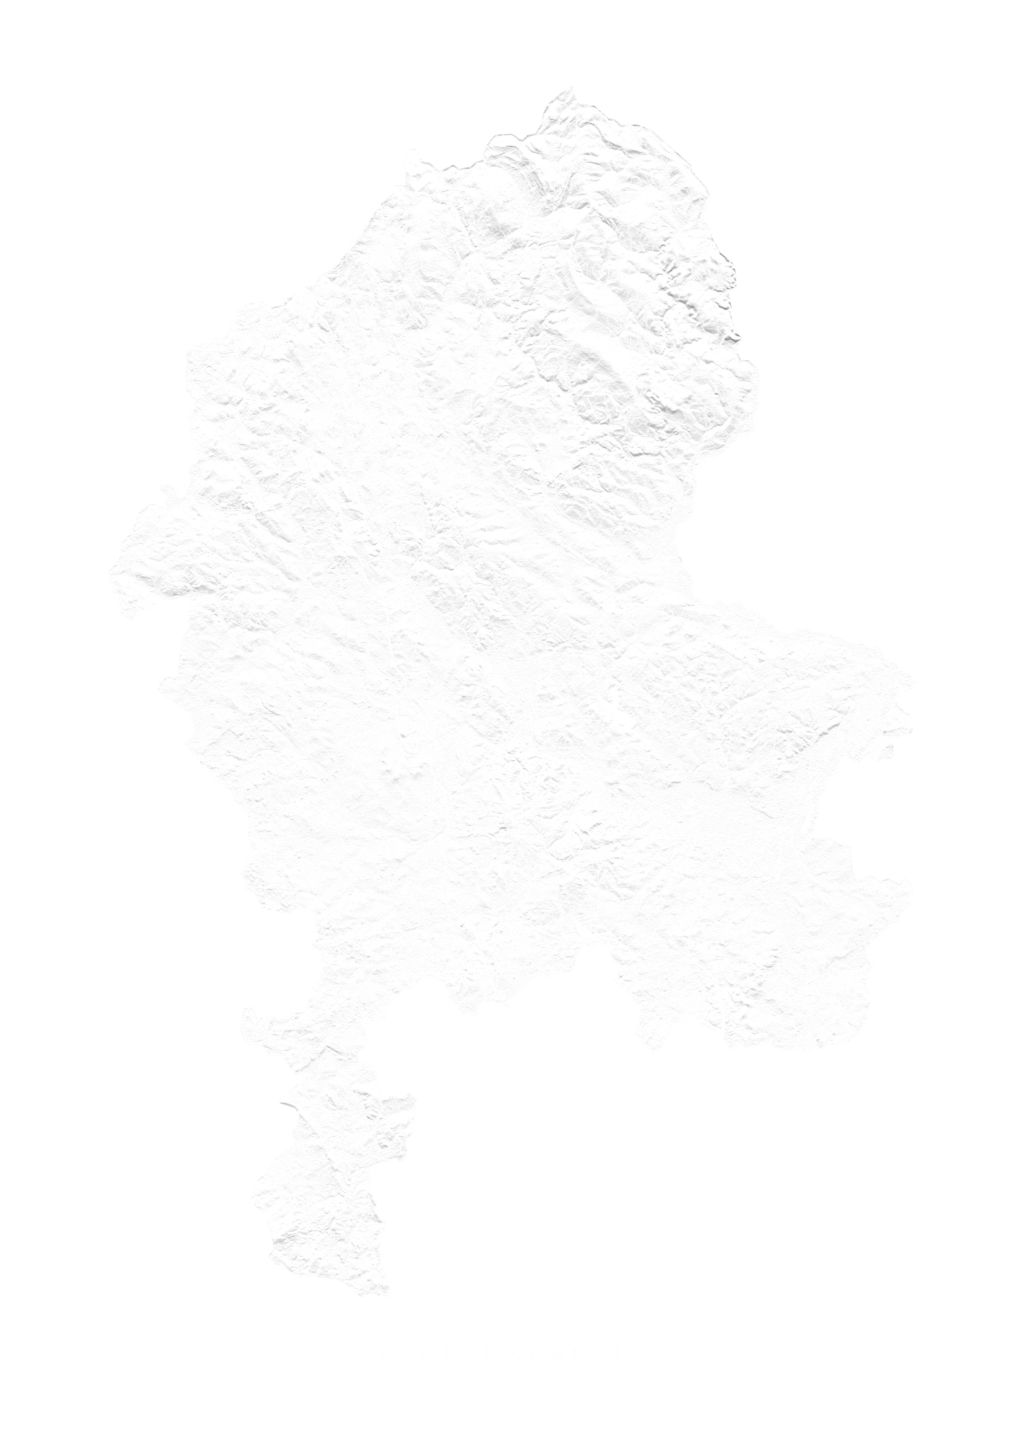 Staffordshire wall map